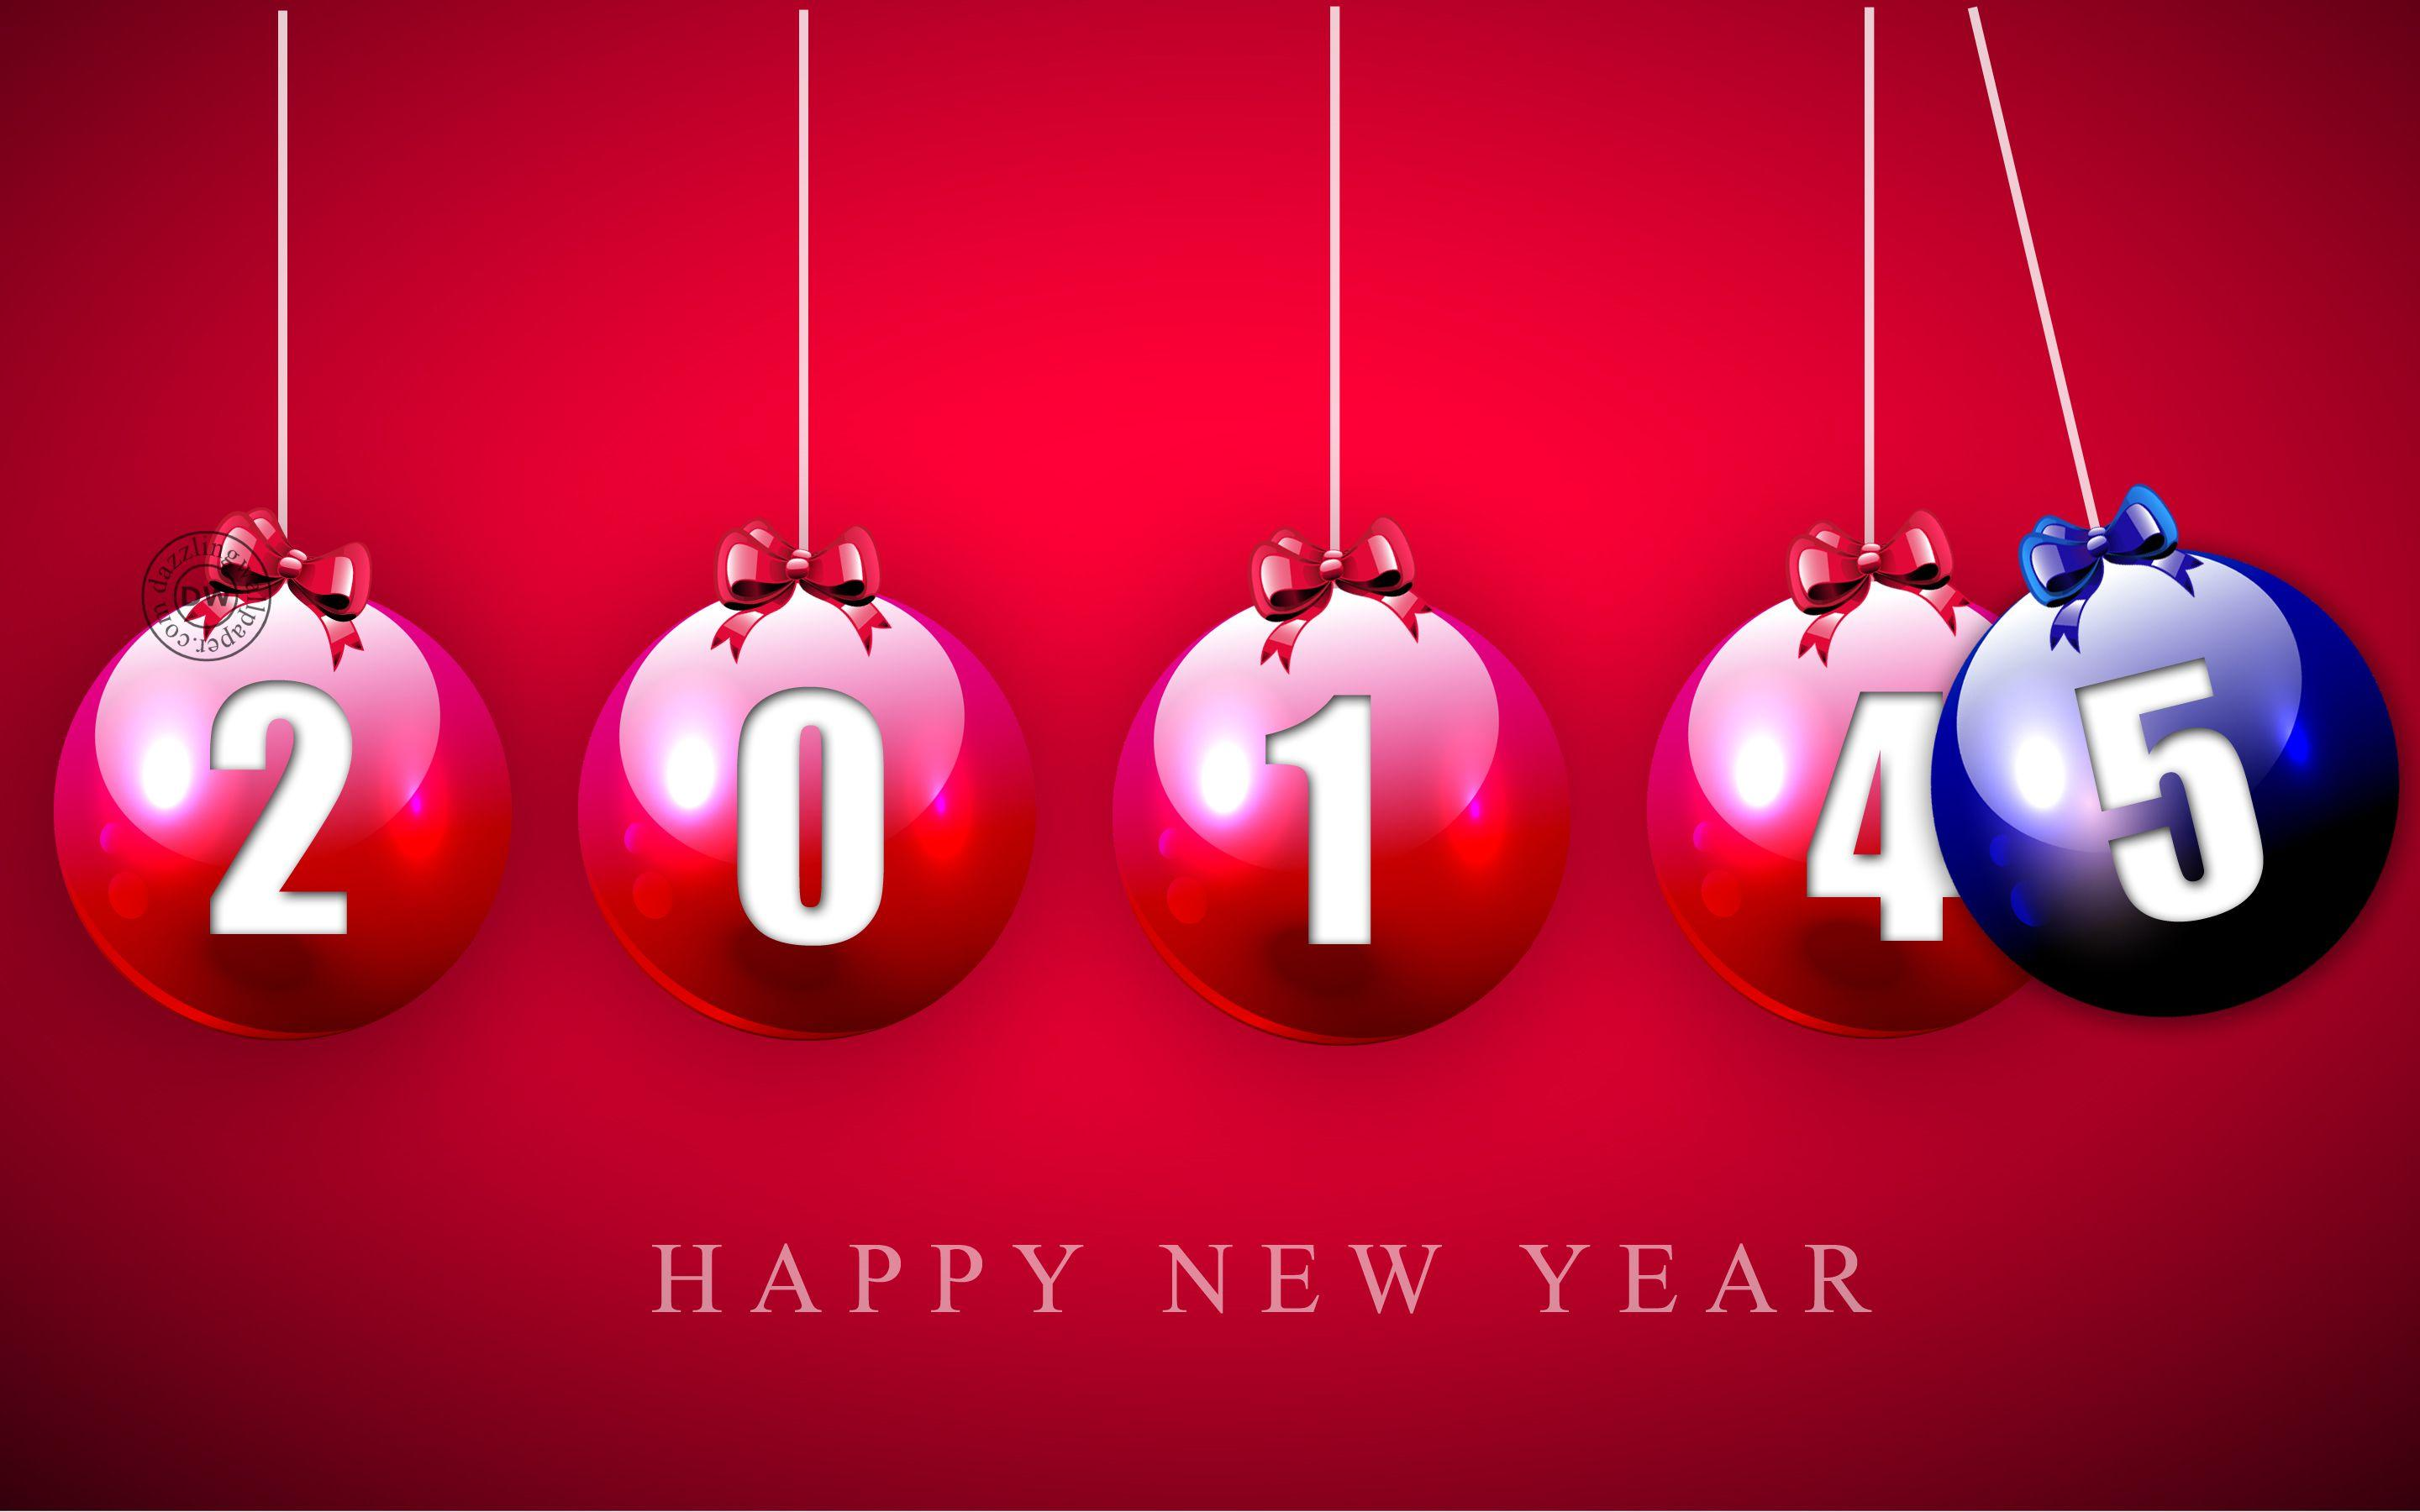 Wallpaper download new year 2015 - Happy New Year 2015 Hd Wallpaper 1920 1080p 3d Free Download